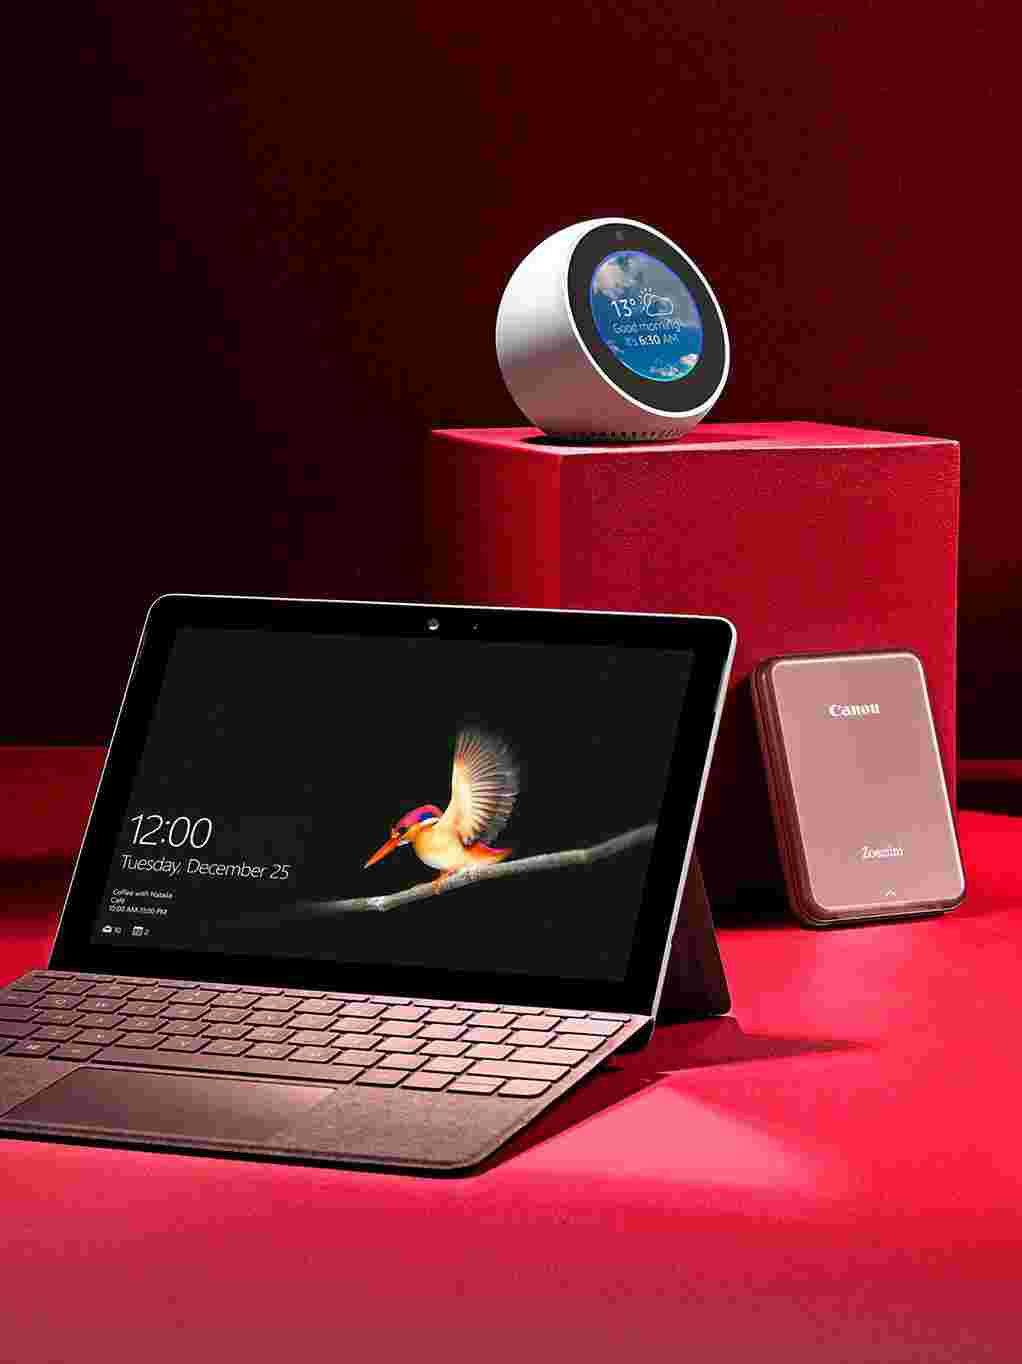 Selection of tech-based gifts; including smart home speakers and laptop computers